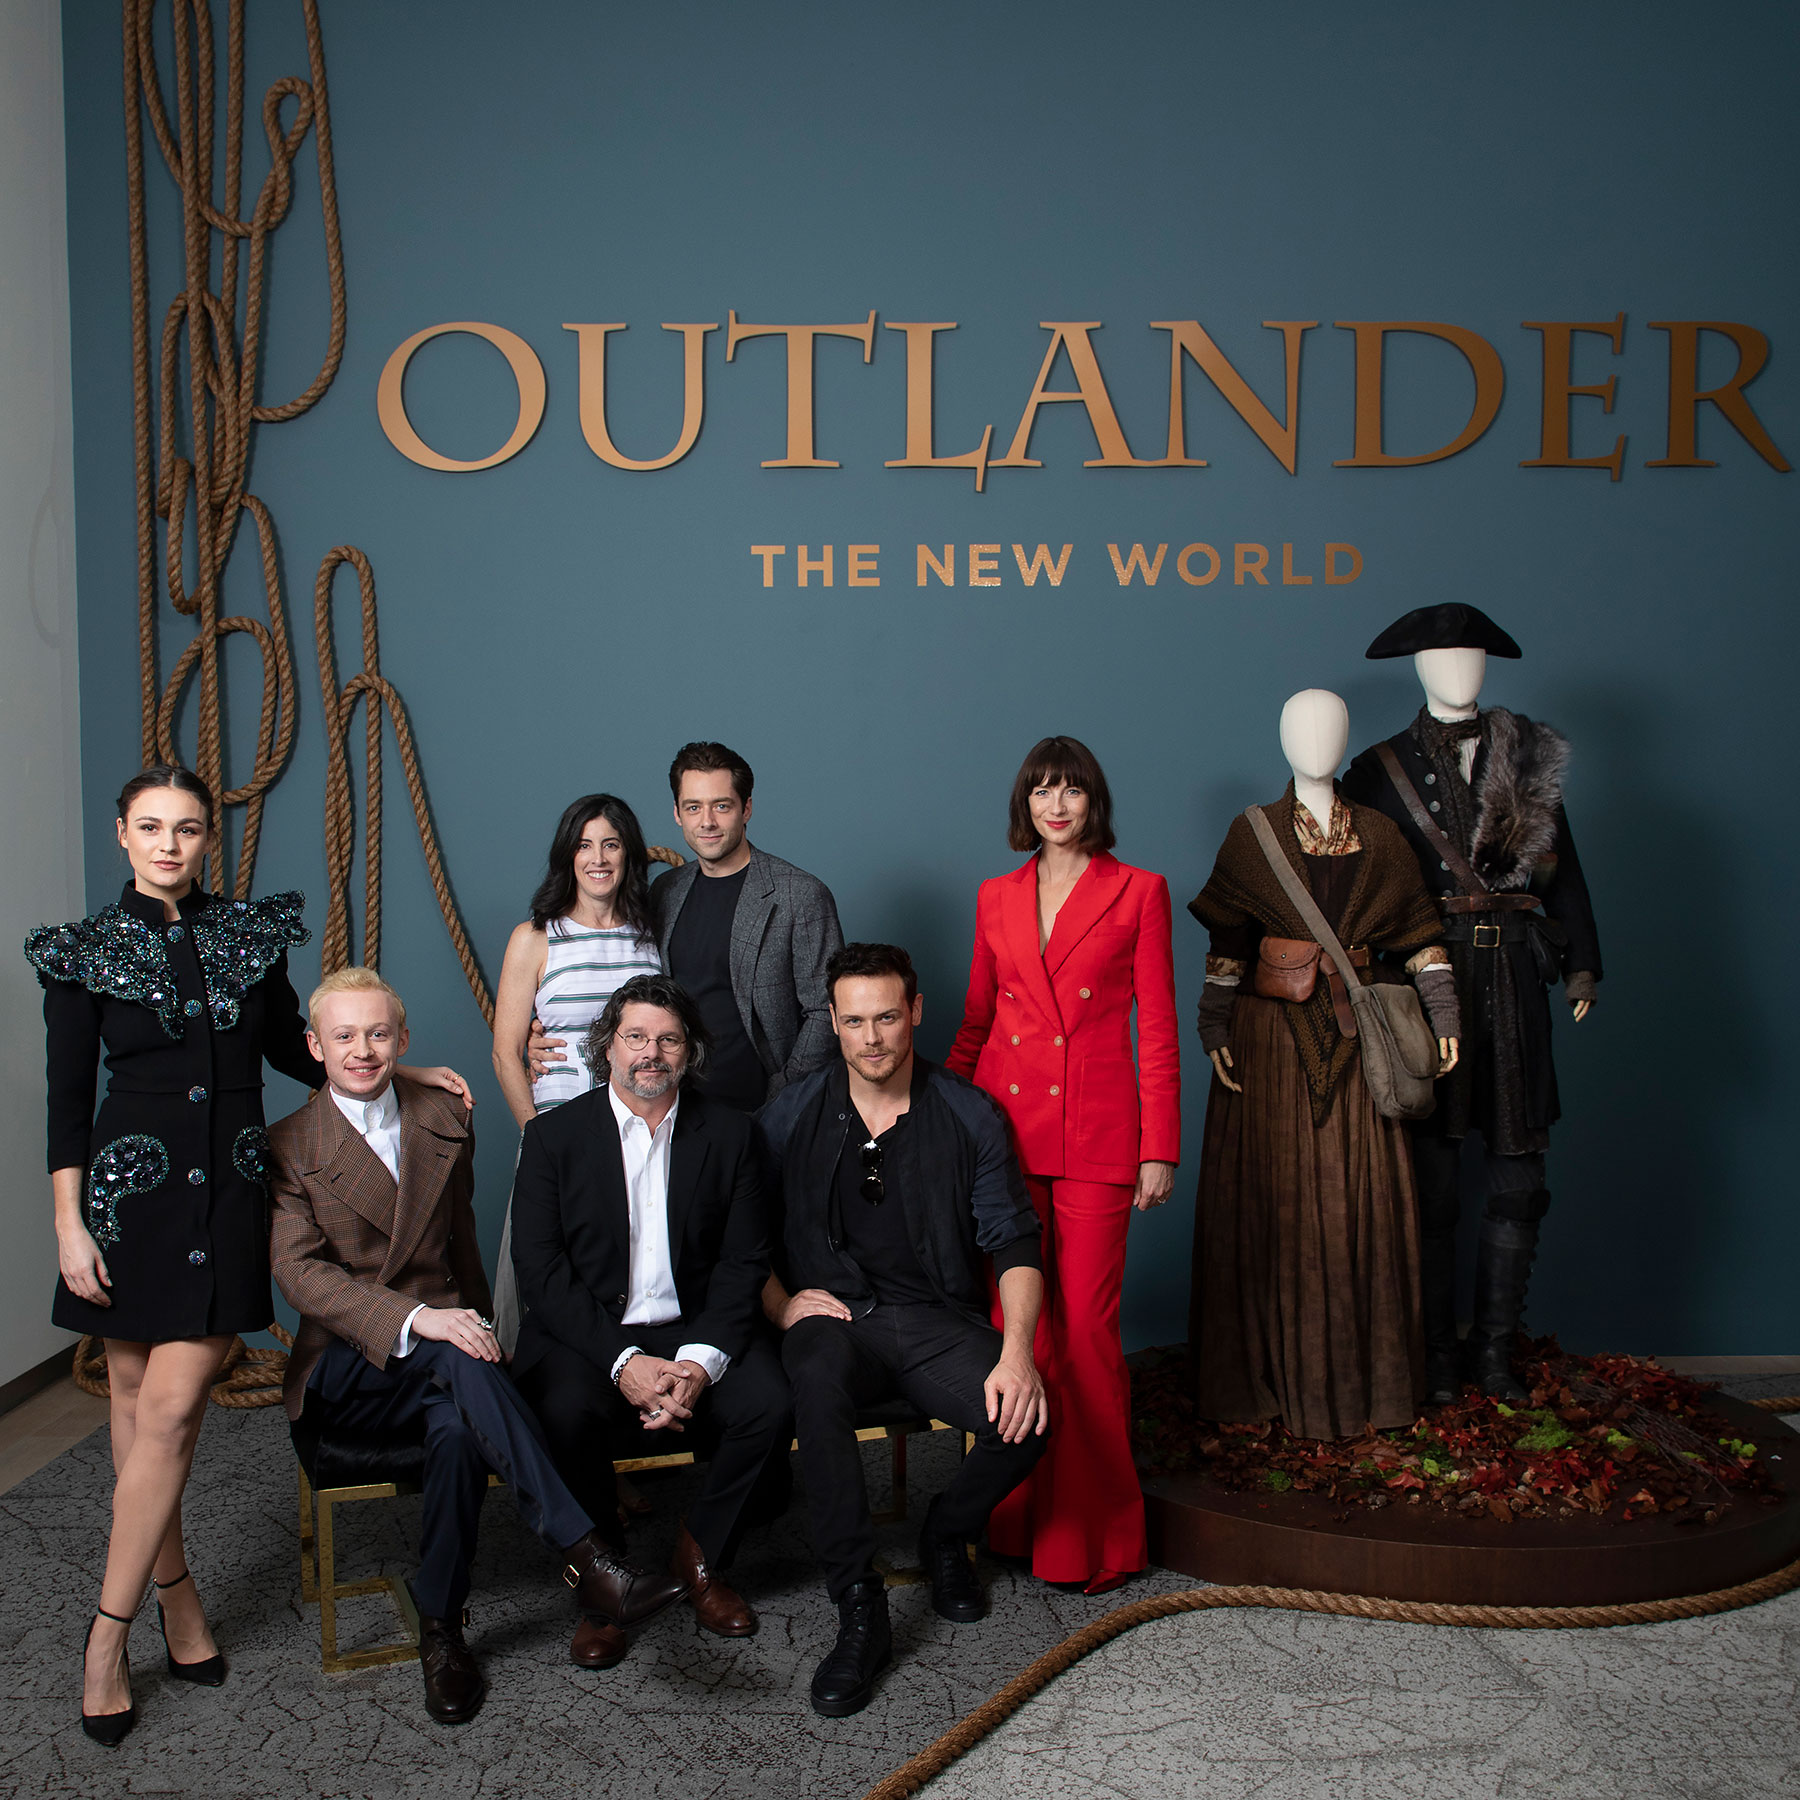 SAV_2018Fall_SFF_Exhibition_OutlanderReception_CC_002_SN